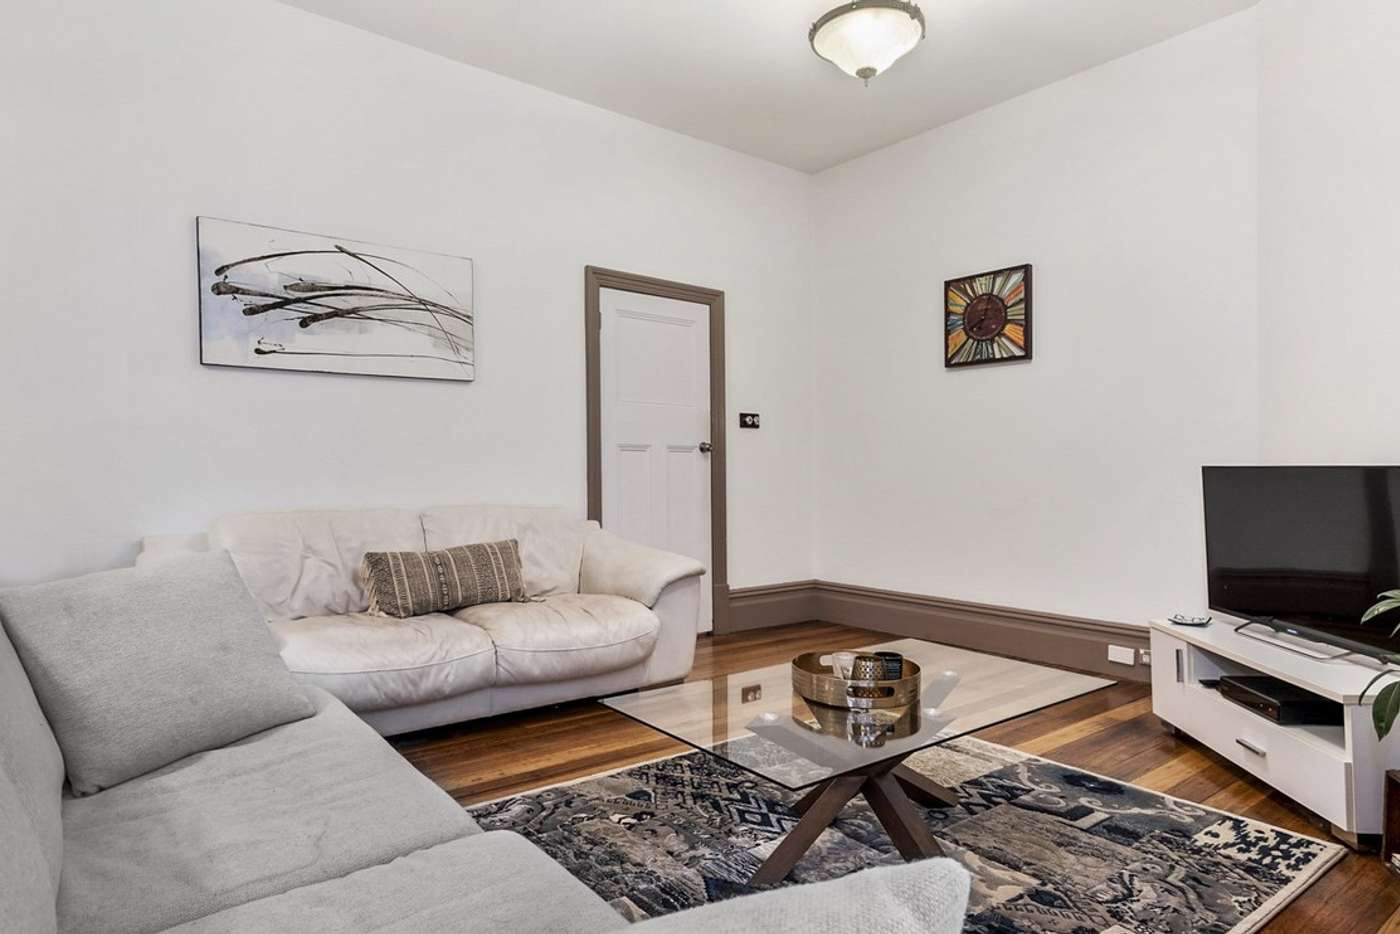 Sixth view of Homely house listing, 1 Pirie Street, New Town TAS 7008